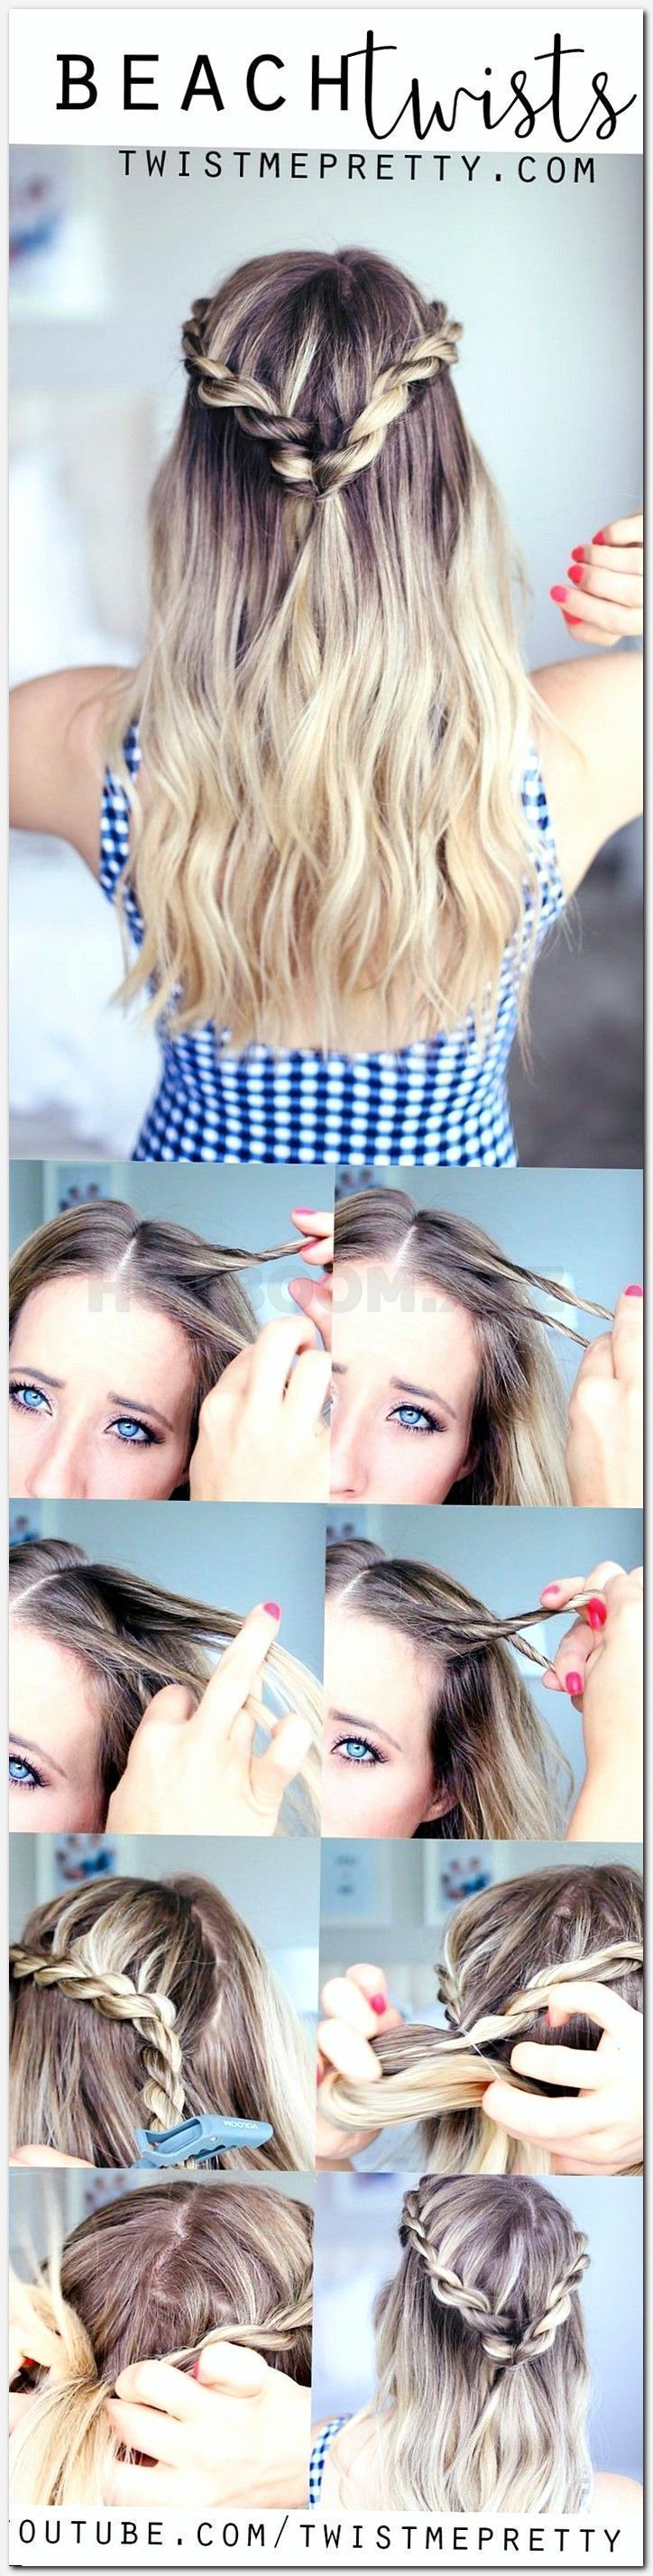 simple medium length hairstyles, fast cute easy hairstyles, mens top haircuts, modern haircuts, hot braid styles, best wavy hairstyles, easy upstyles for long hair, short hairstyles com, bride and bridesmaid hair, , shoulder length haircut styles, easy h #easyhairstylesformediumhair #easyhairstylesformoms #menshairstyleslong #menshairstylesmedium